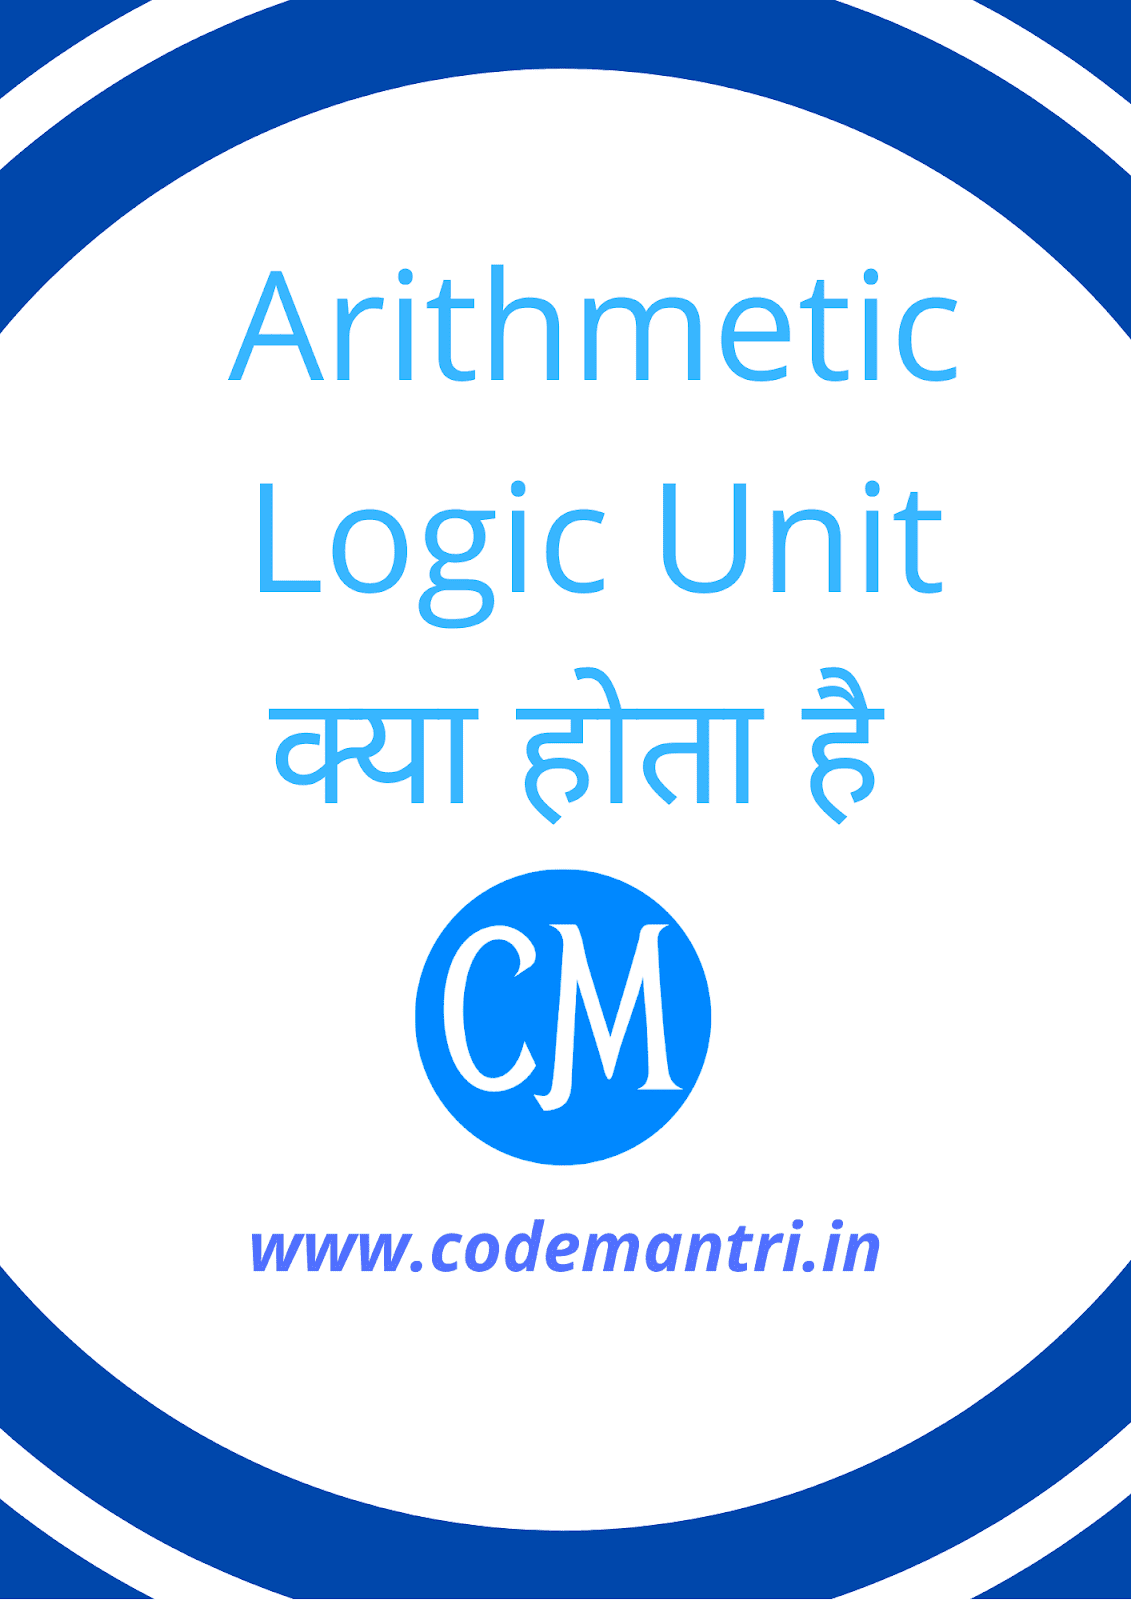 What is arithmetic logic unit in hindi